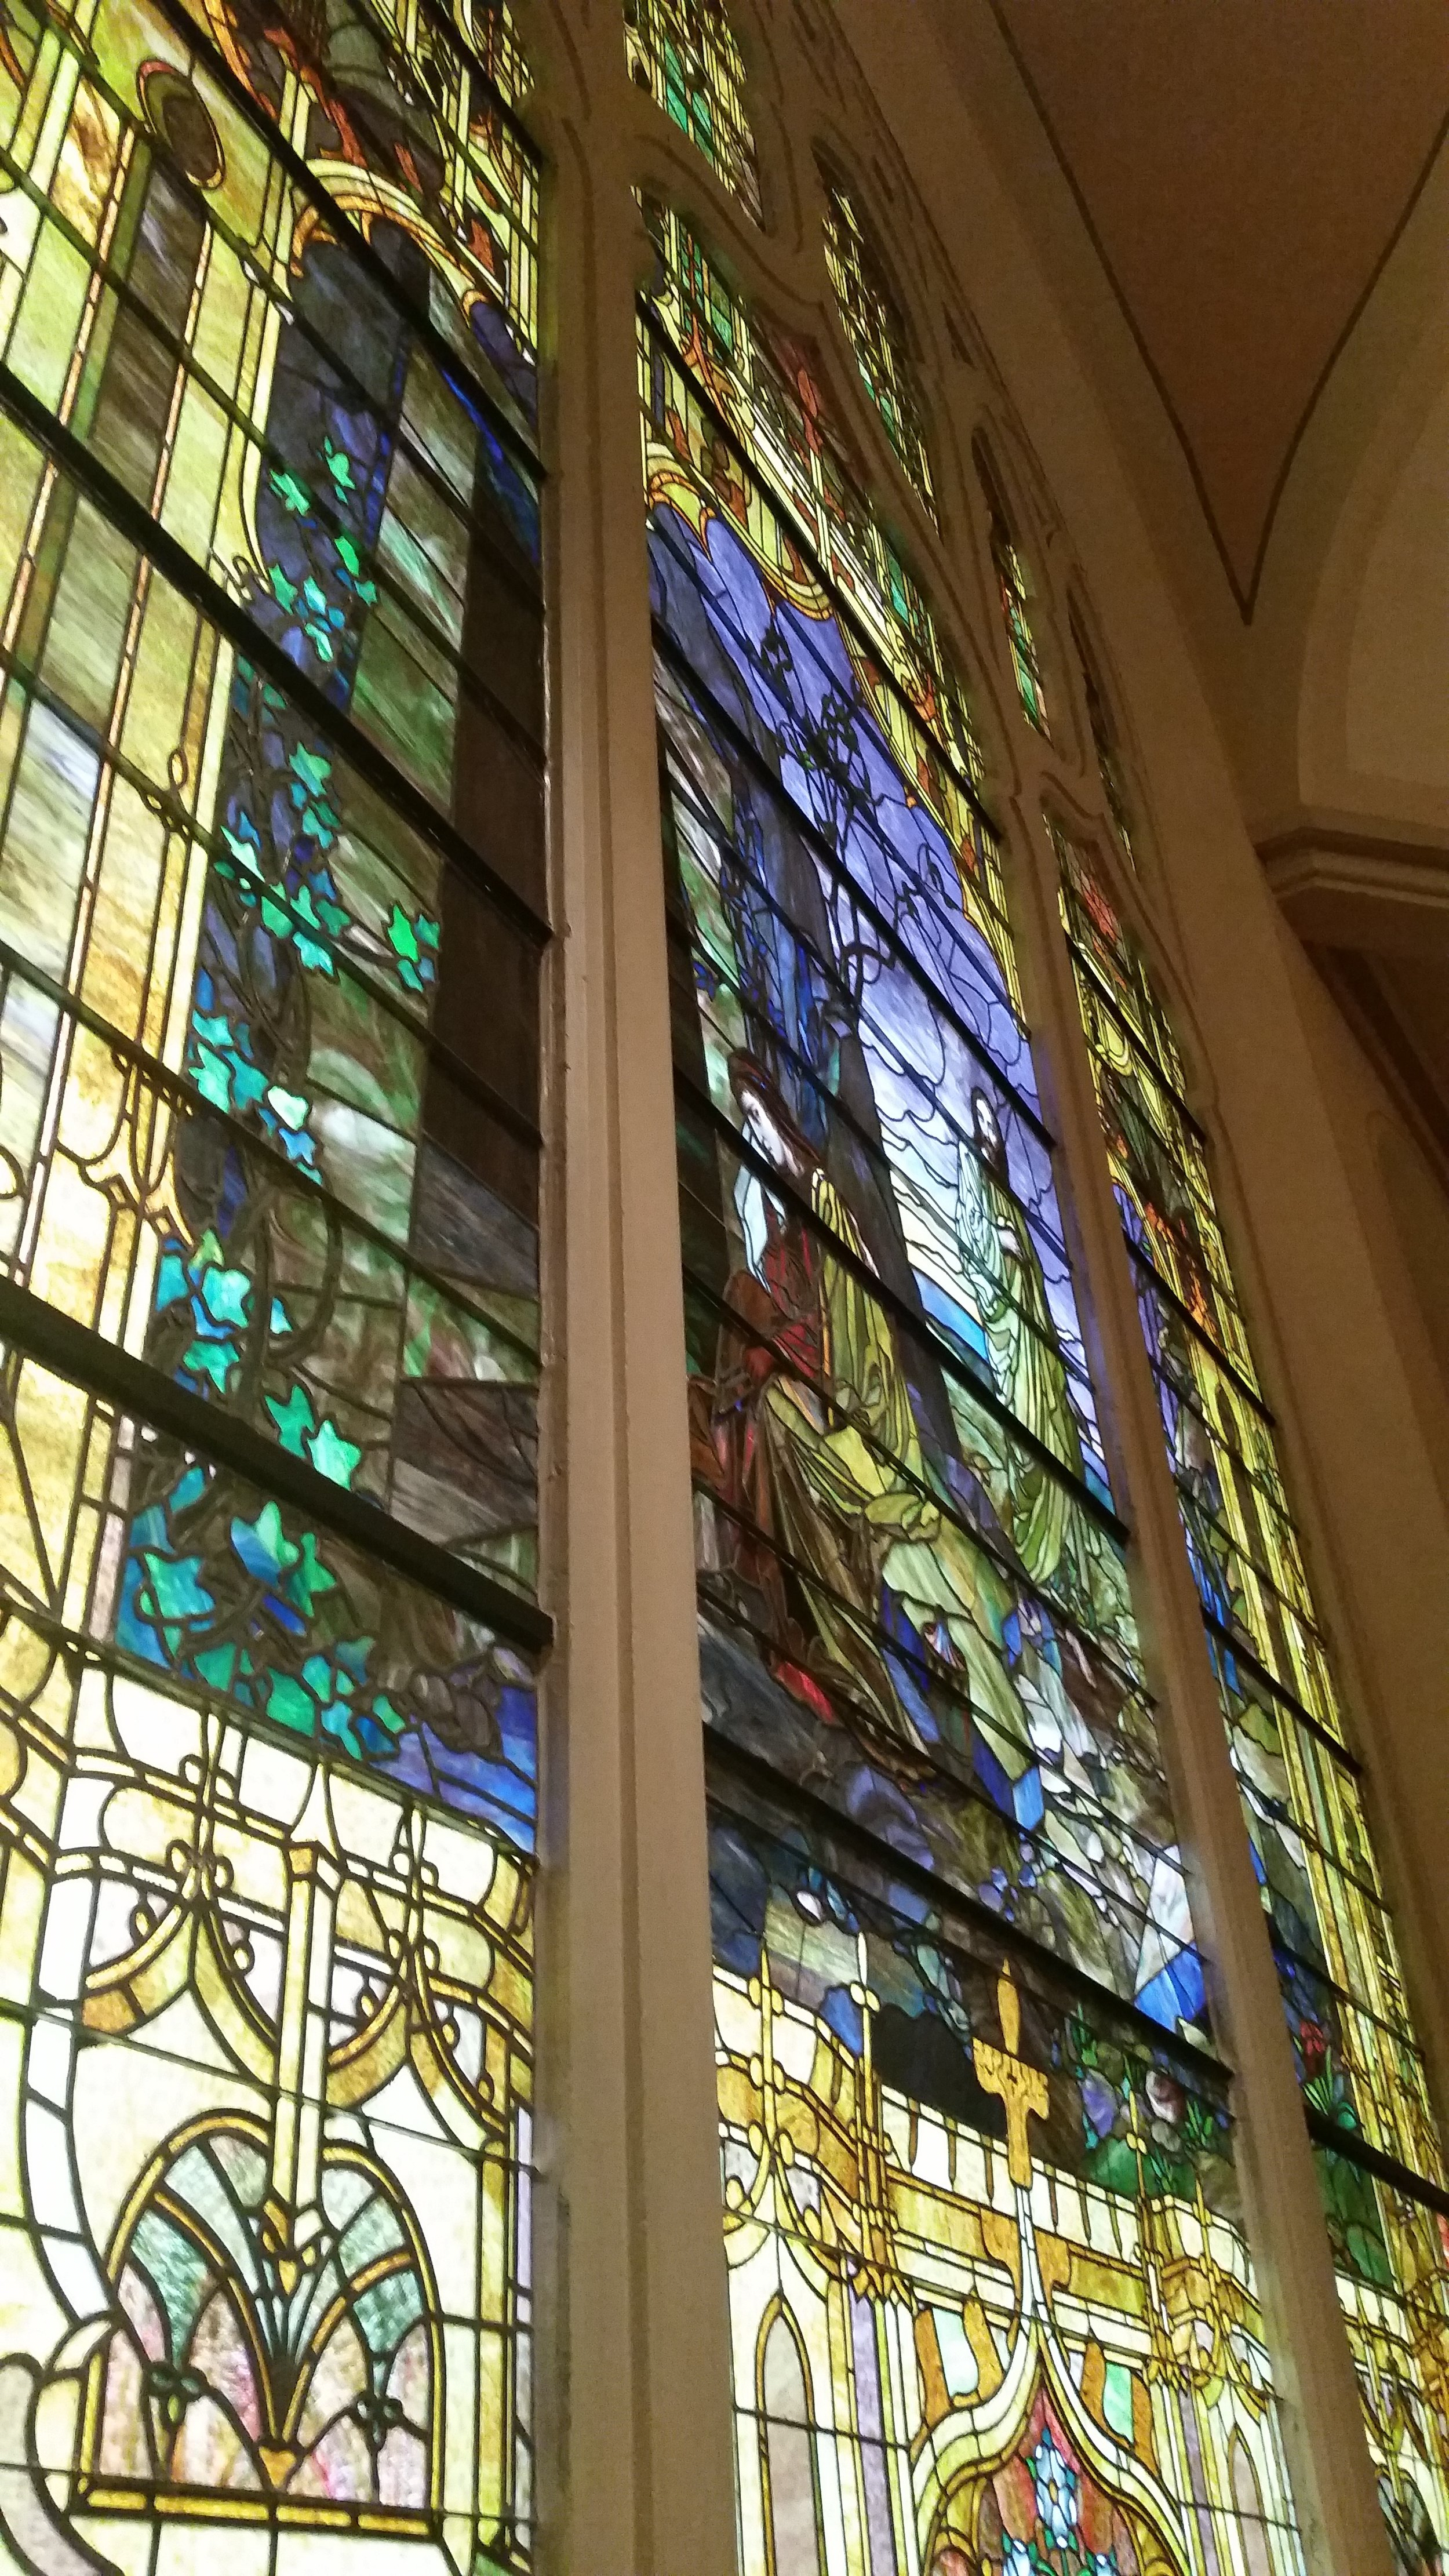 Aren't the stained glass windows gorgeous?